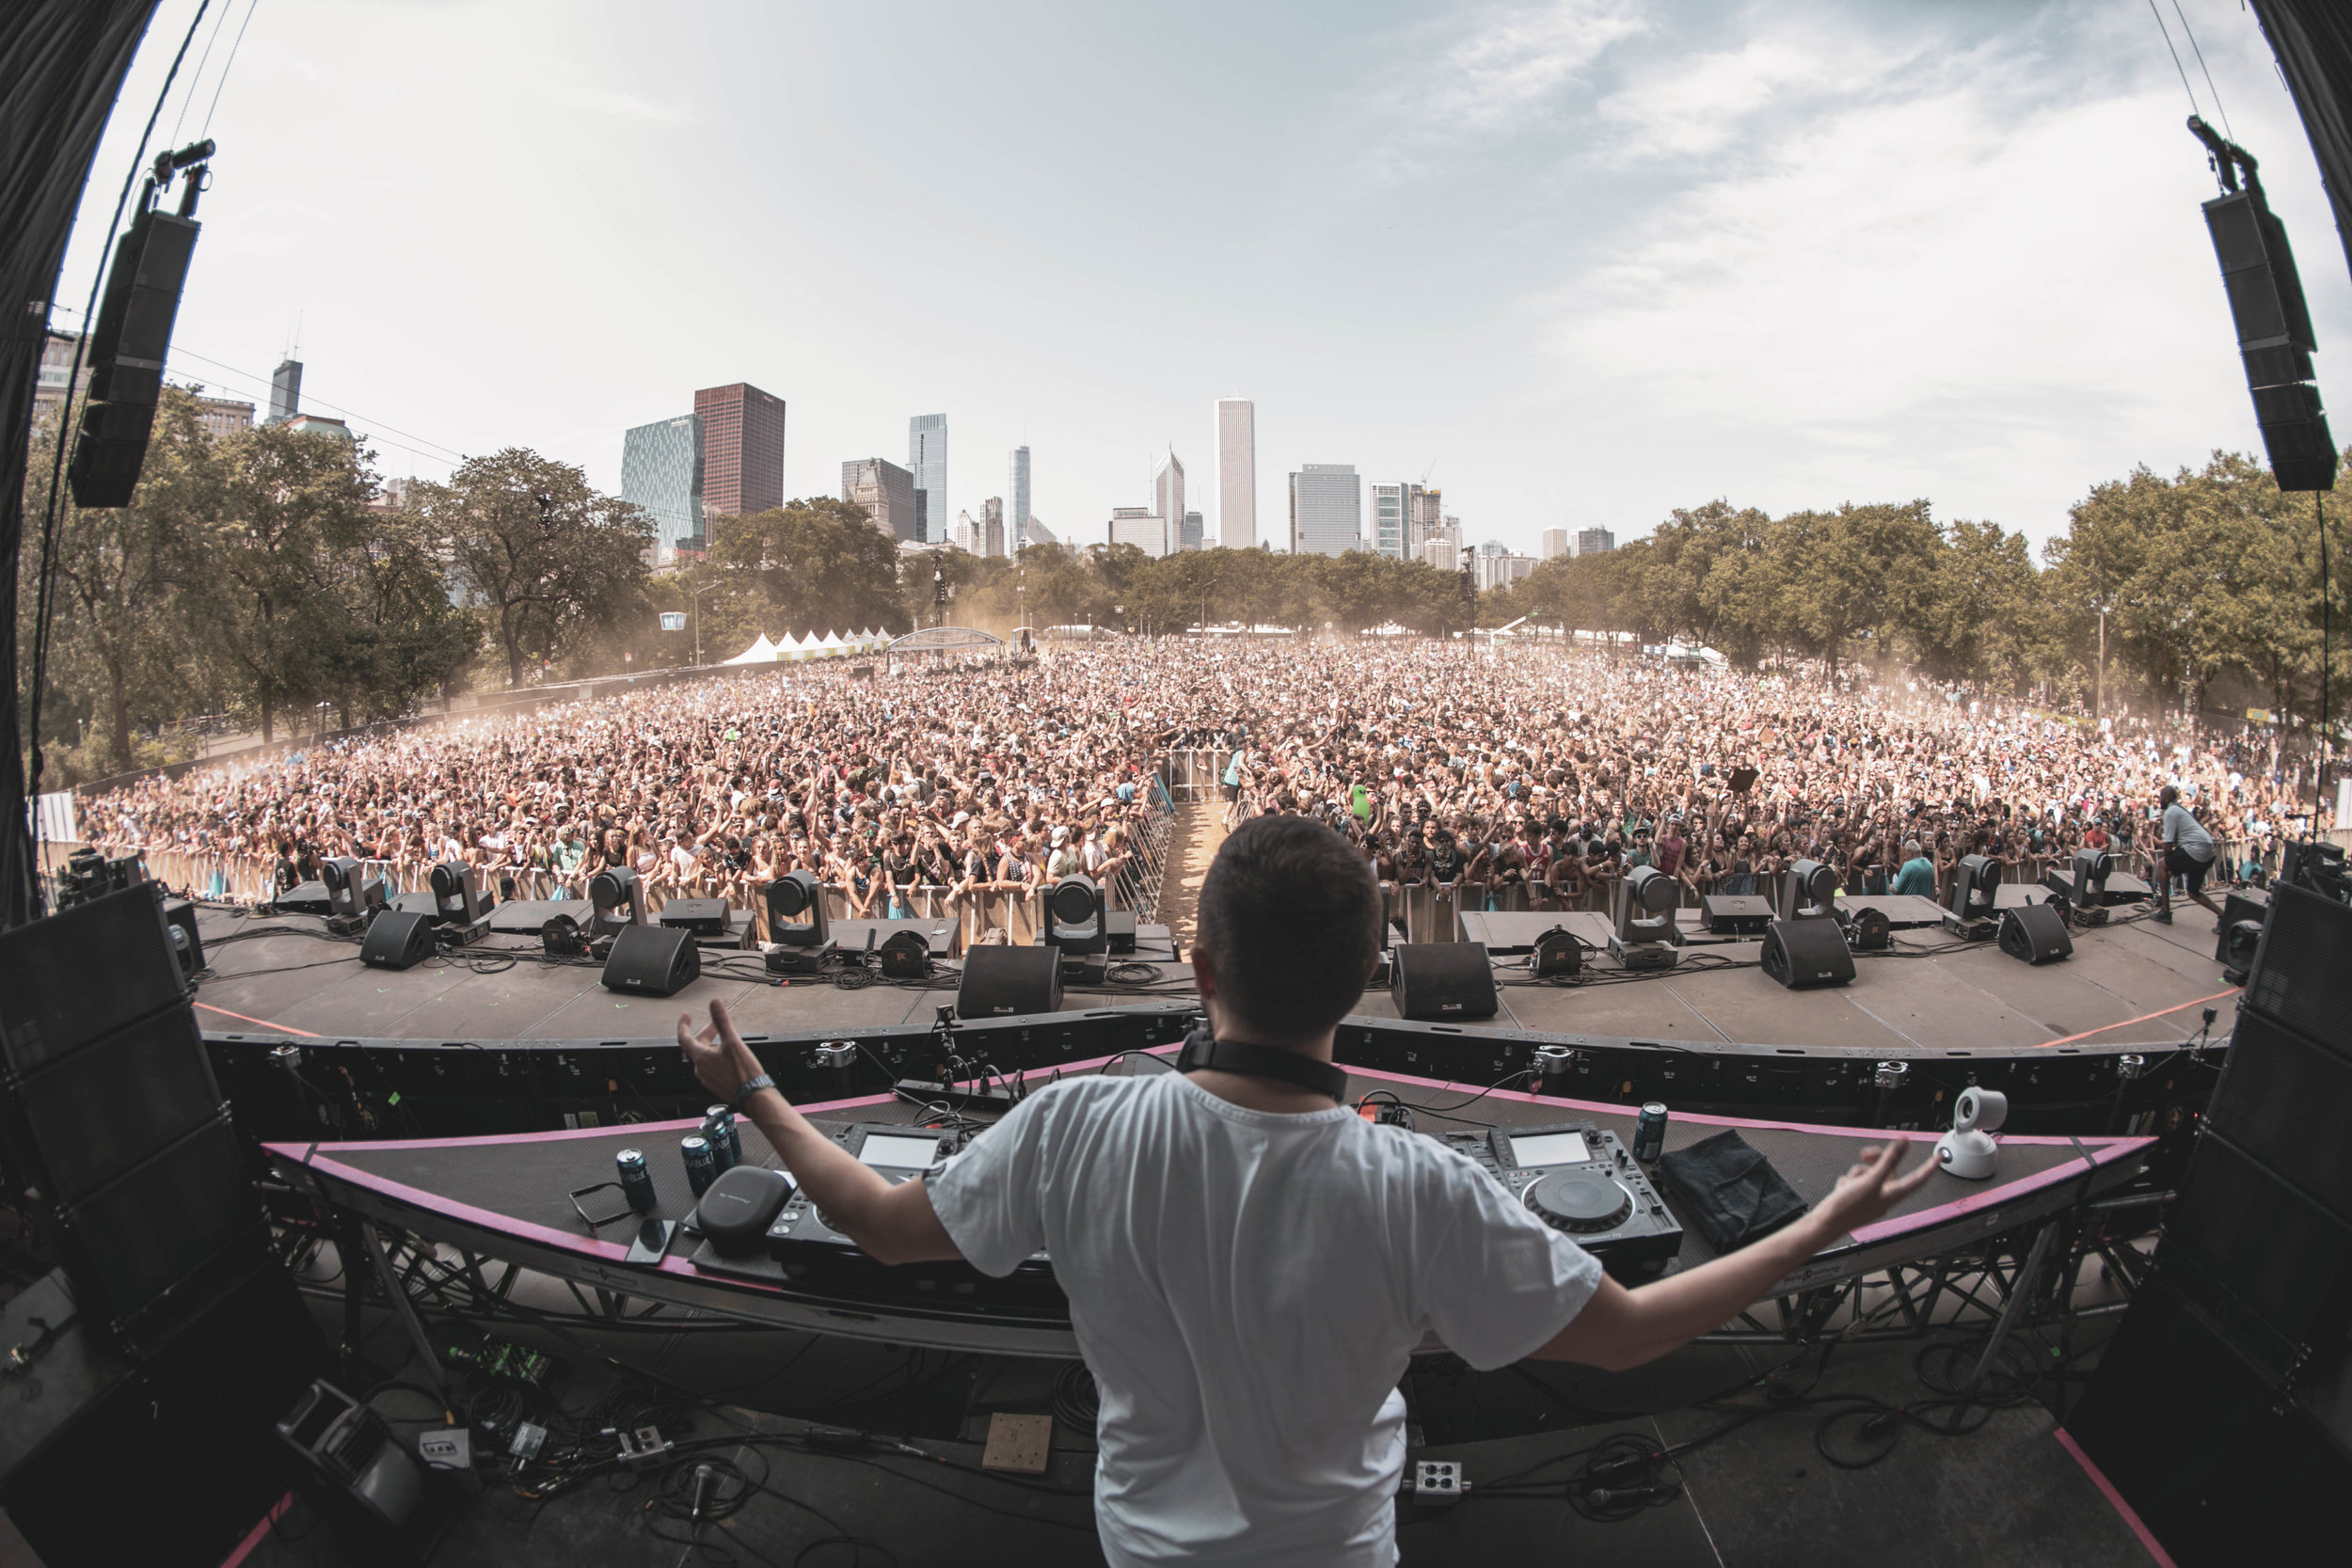 Chris Lake - Lollapalooza Chicago, IL August 2018